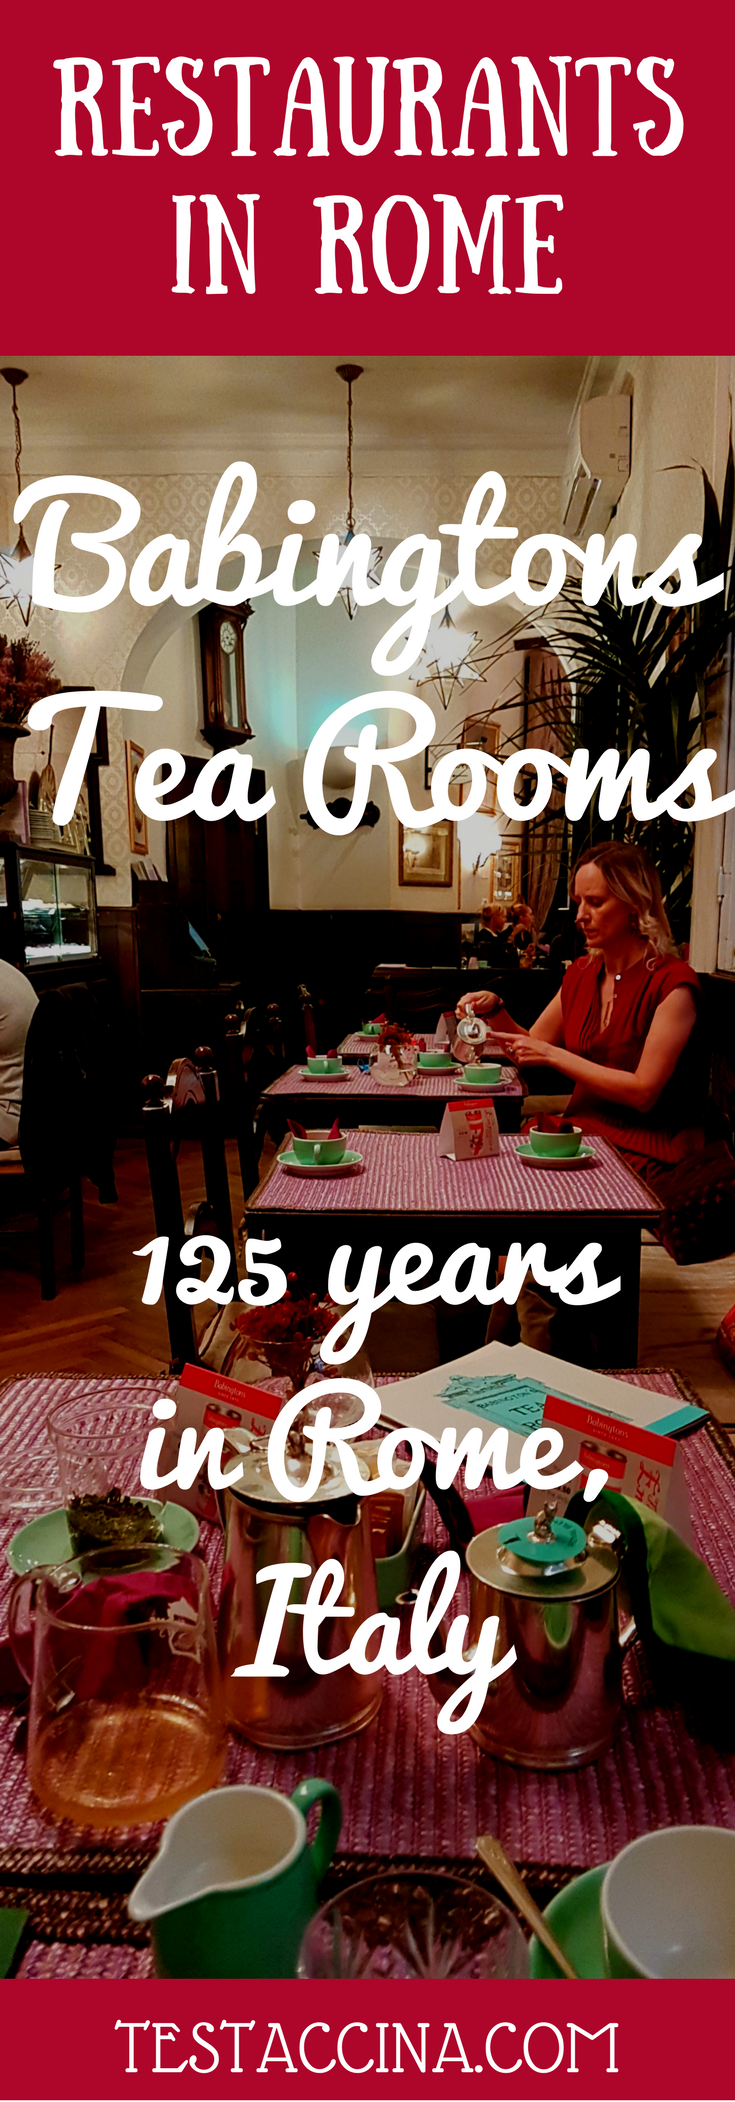 Babingtons Tea Rooms, at the foot of the Spanish Steps in Rome, is celebrating an astonishing 125 years in the Eternal City.